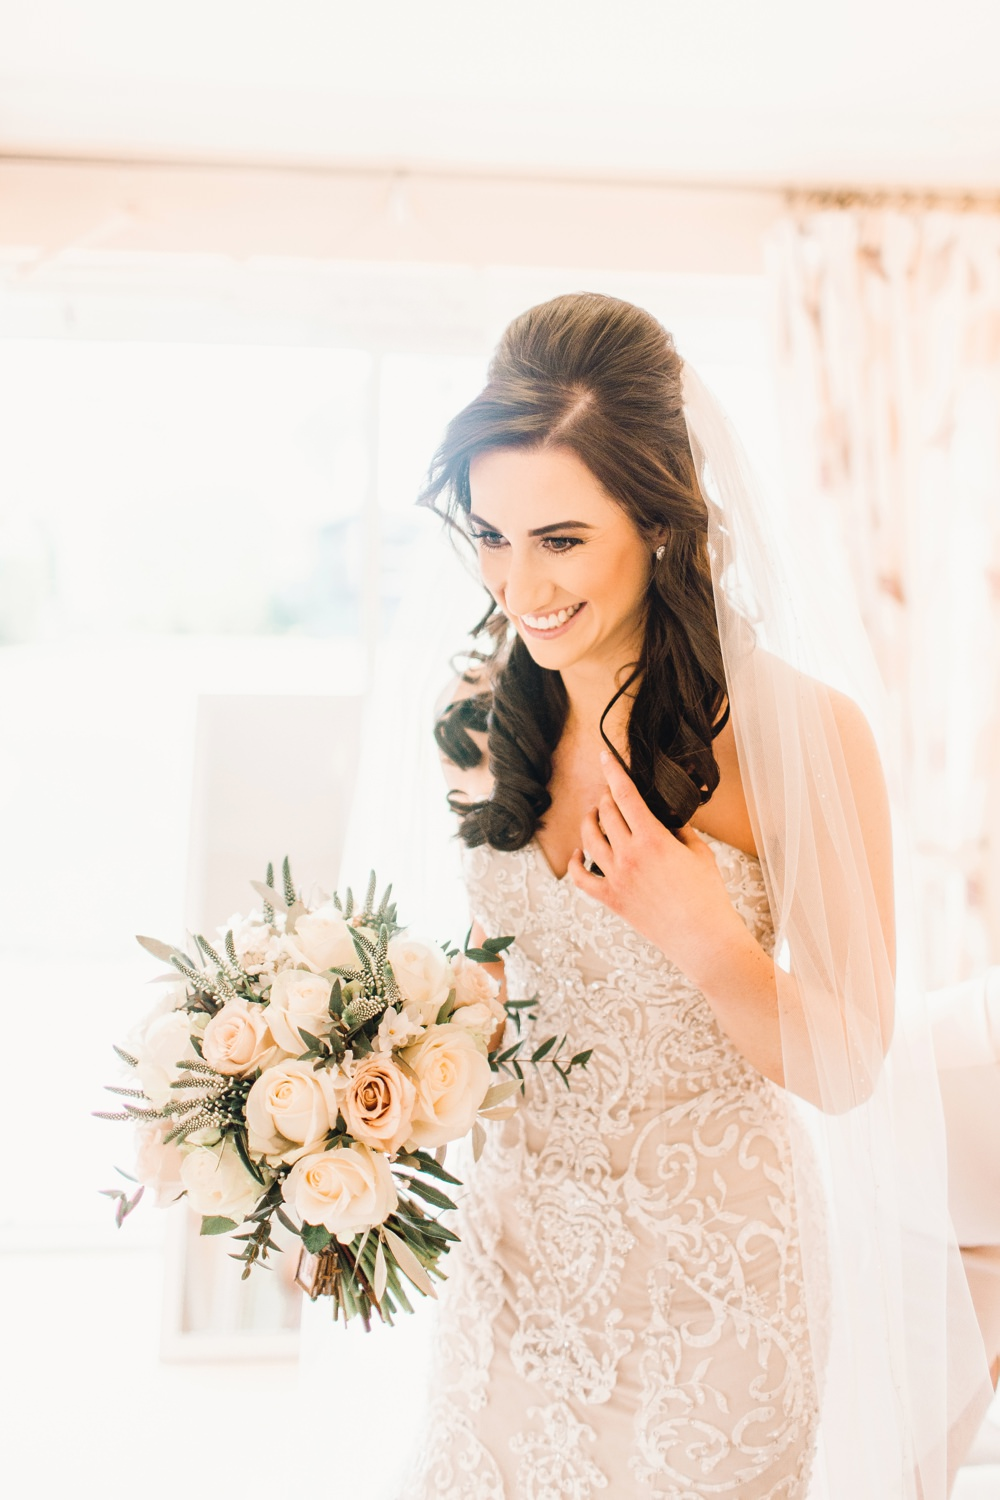 Bride Bridal Dress Gown Ivory Lace Champagne Satin Sweetheart Strapless Train Corset Bodice Pearls Veil Llanrhaeadr Springs Wedding Jessica Reeve Photography